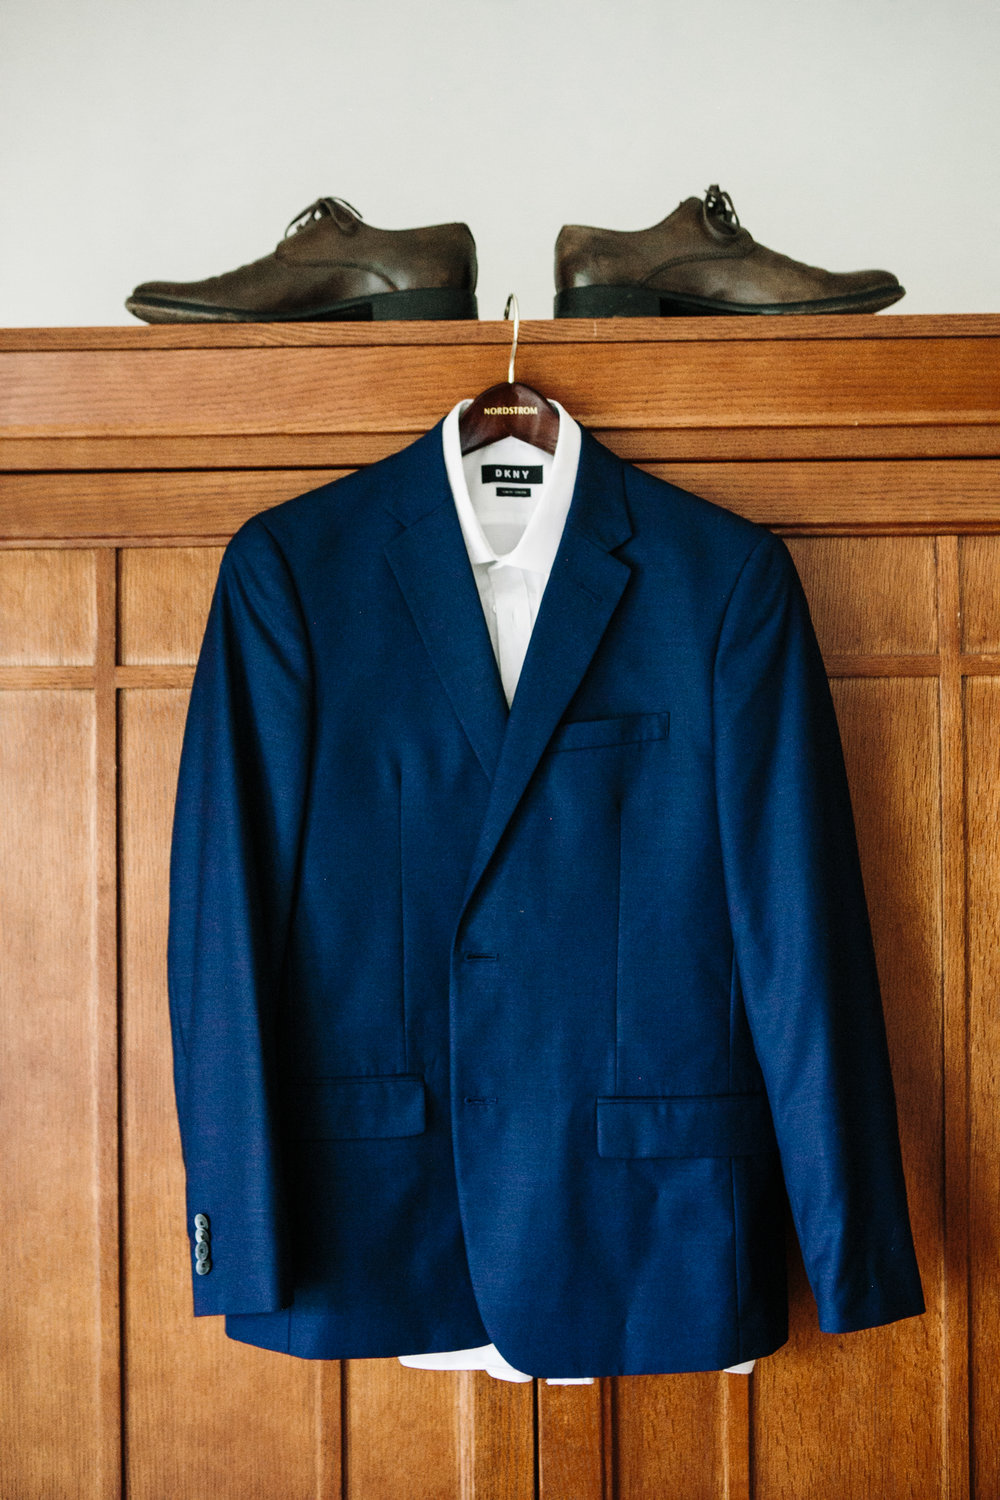 Groom Suit and Details